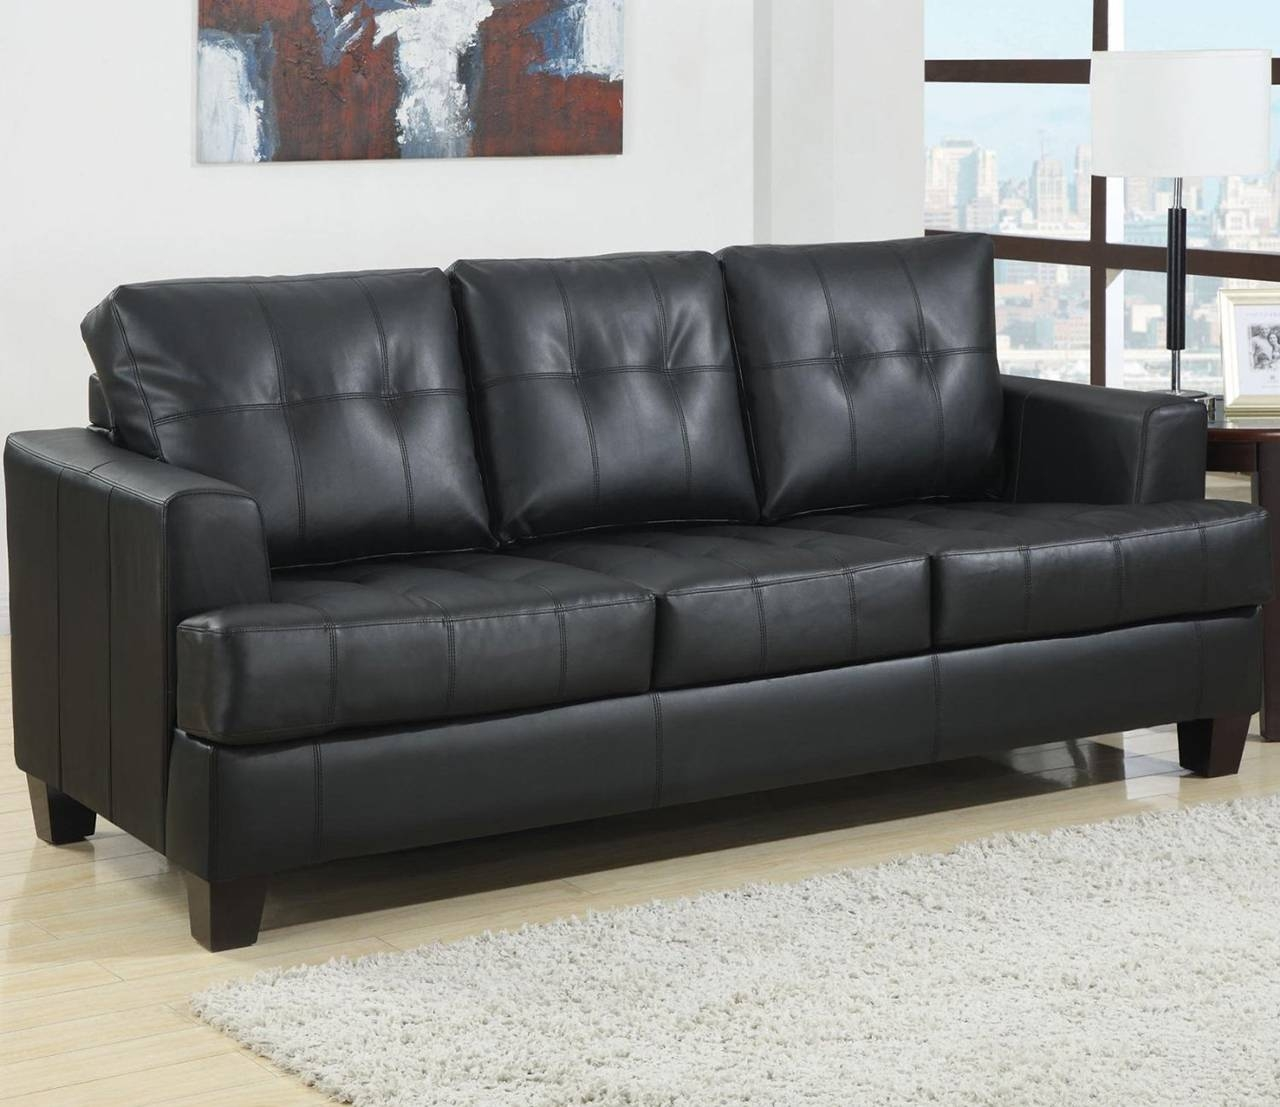 High End Sleeper Sofa With Ideas Hd Images 22469 | Kengire in High End Sofa (Image 13 of 30)